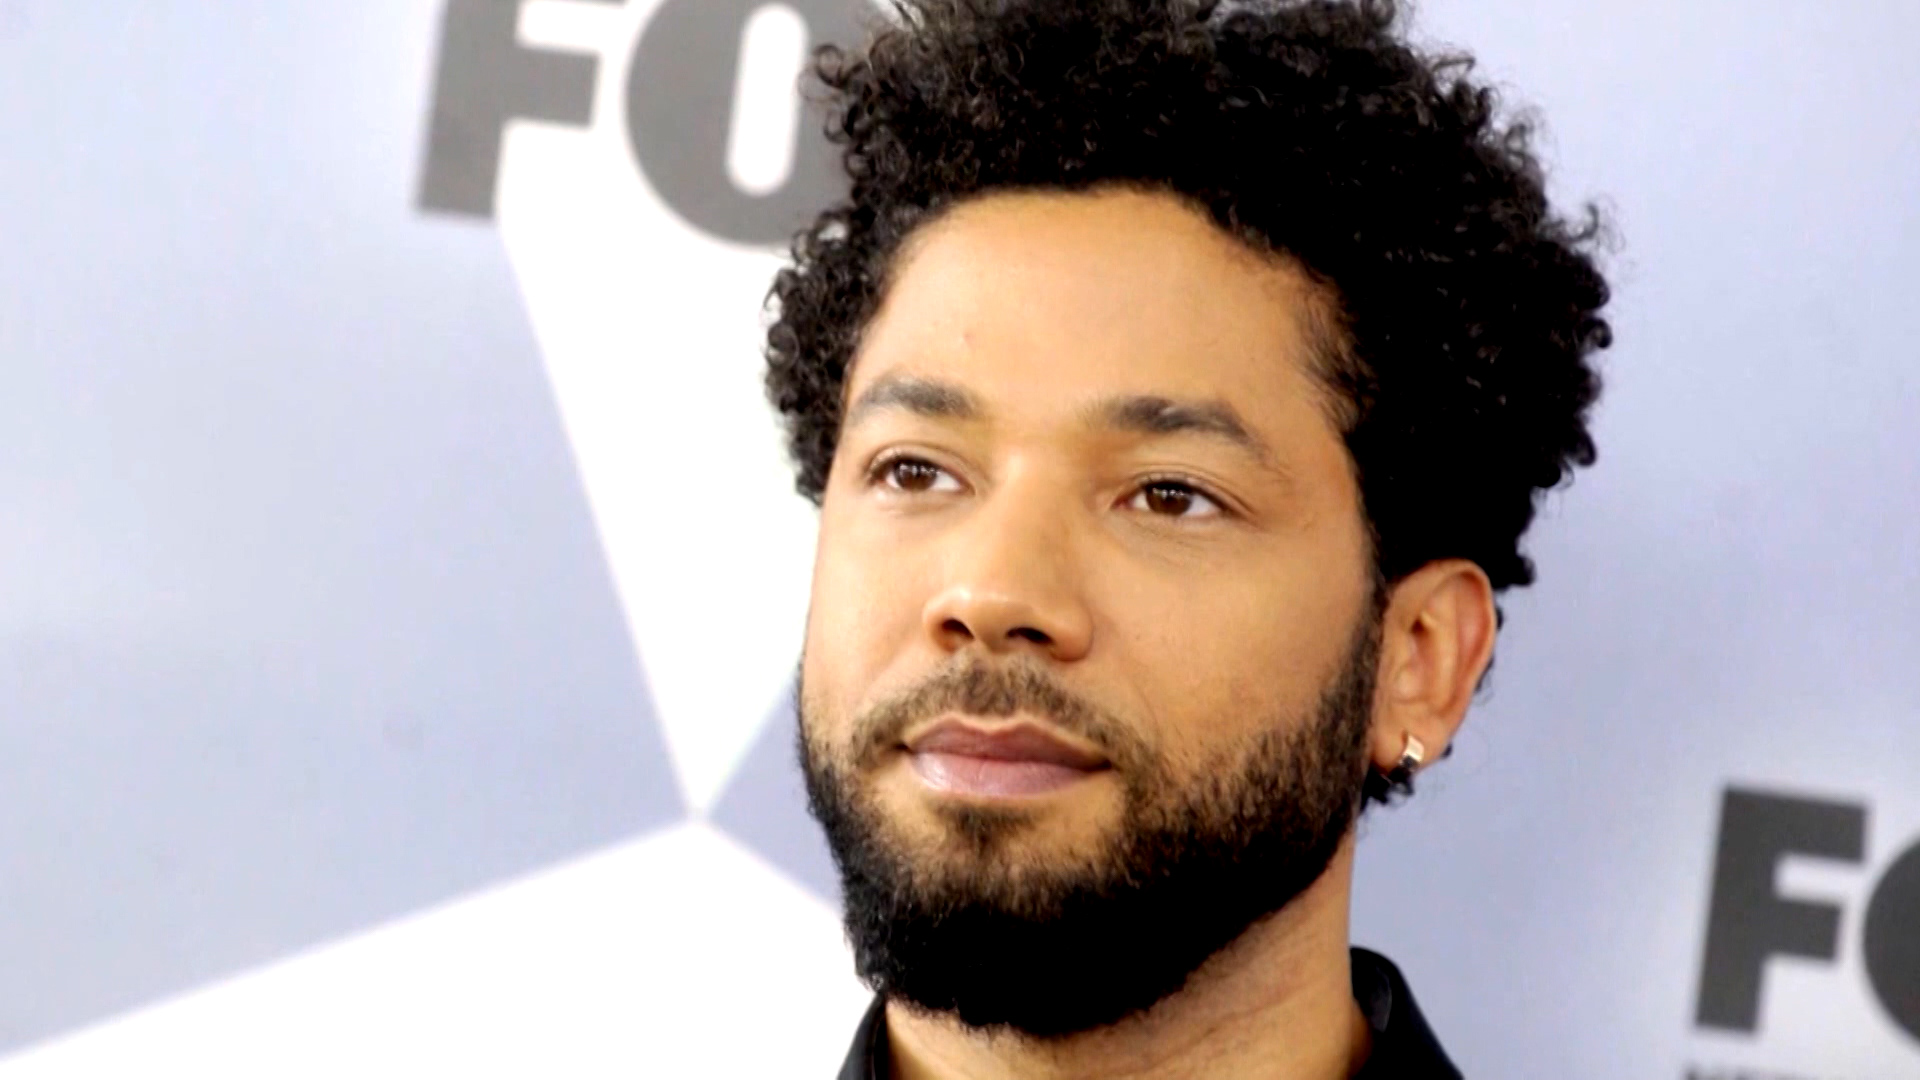 Brothers involved in Jussie Smollett case express 'tremendous regret,' lawyer says